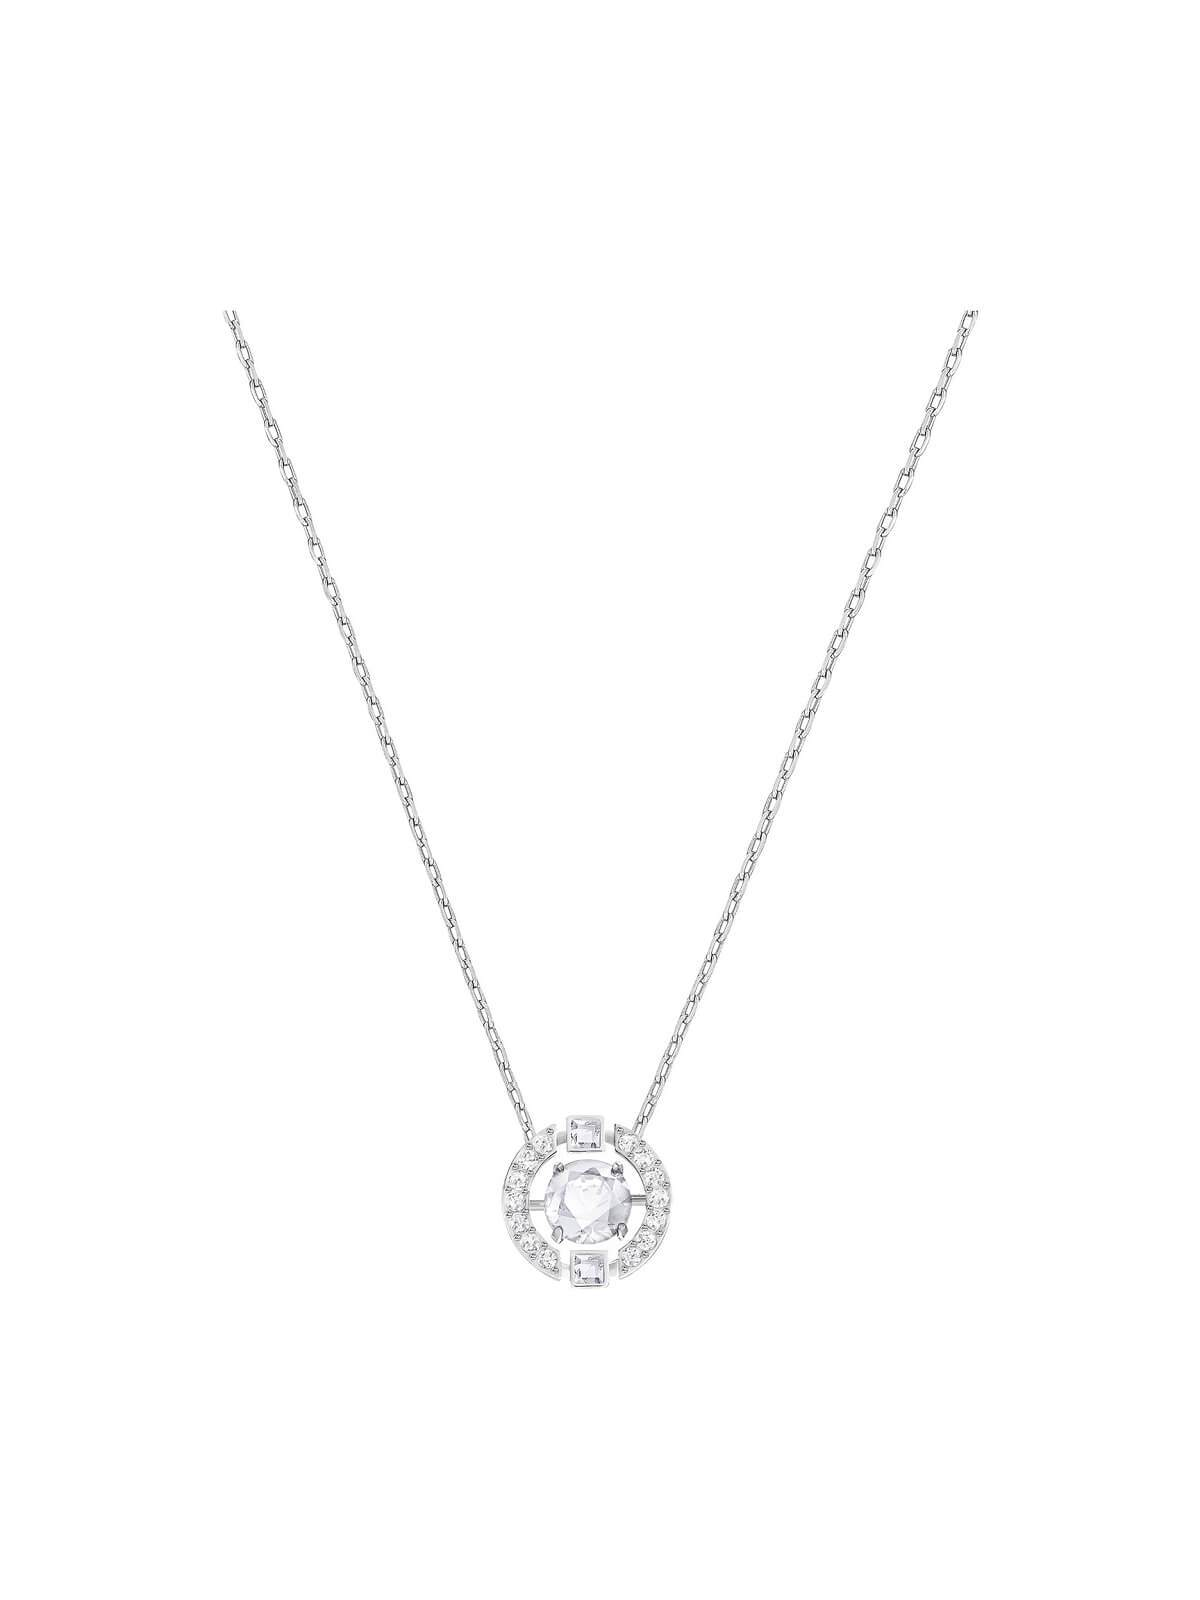 Swarovski Sparkling Dance Rhodium Plated and Clear Crystal Necklace 5286137